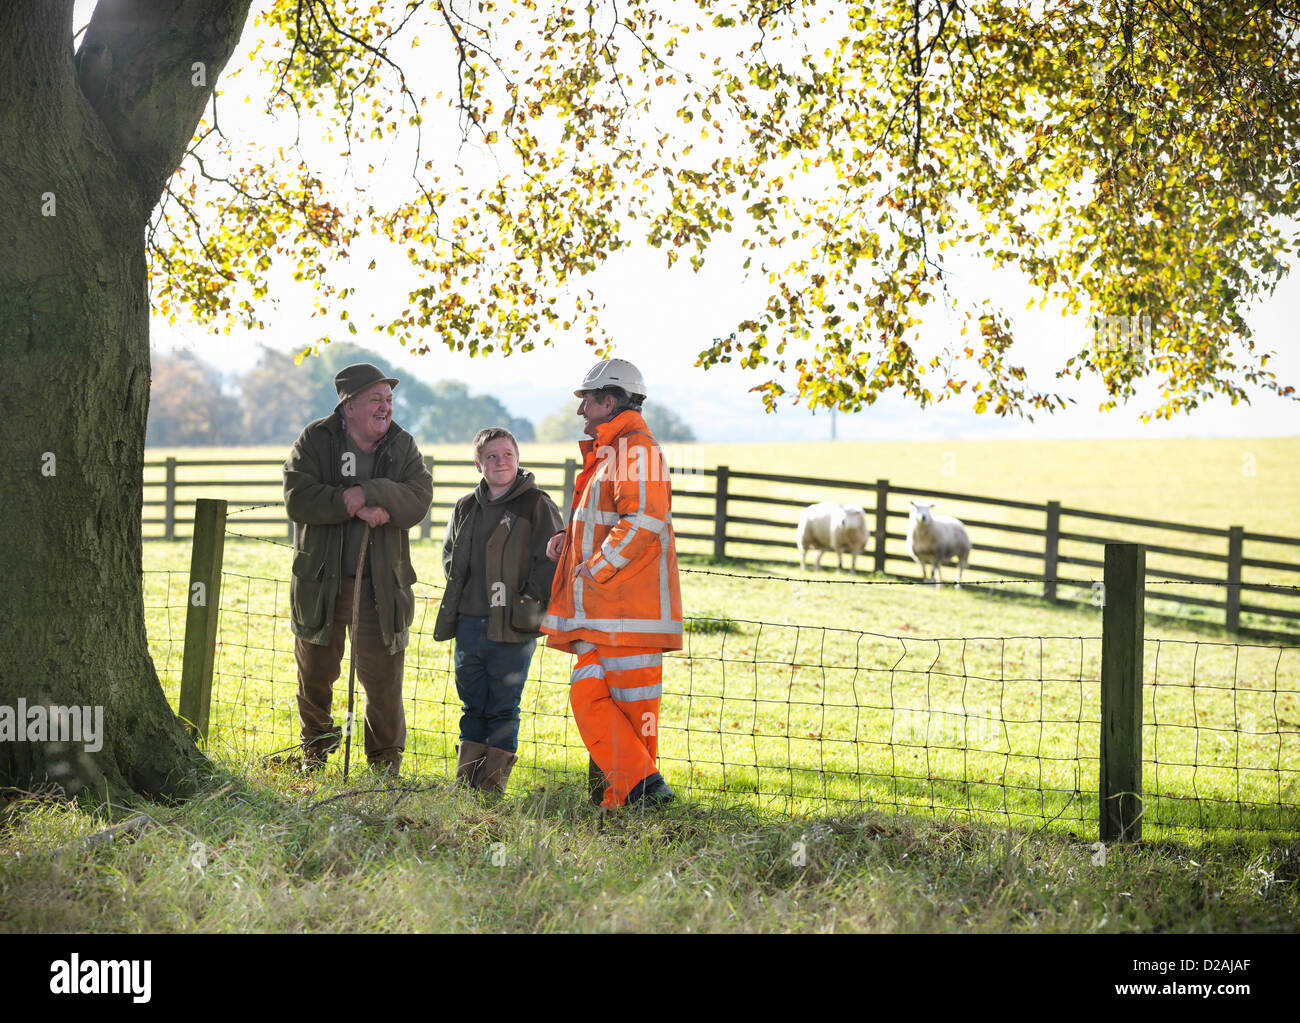 Ecologist and farmers talking in field - Stock Image